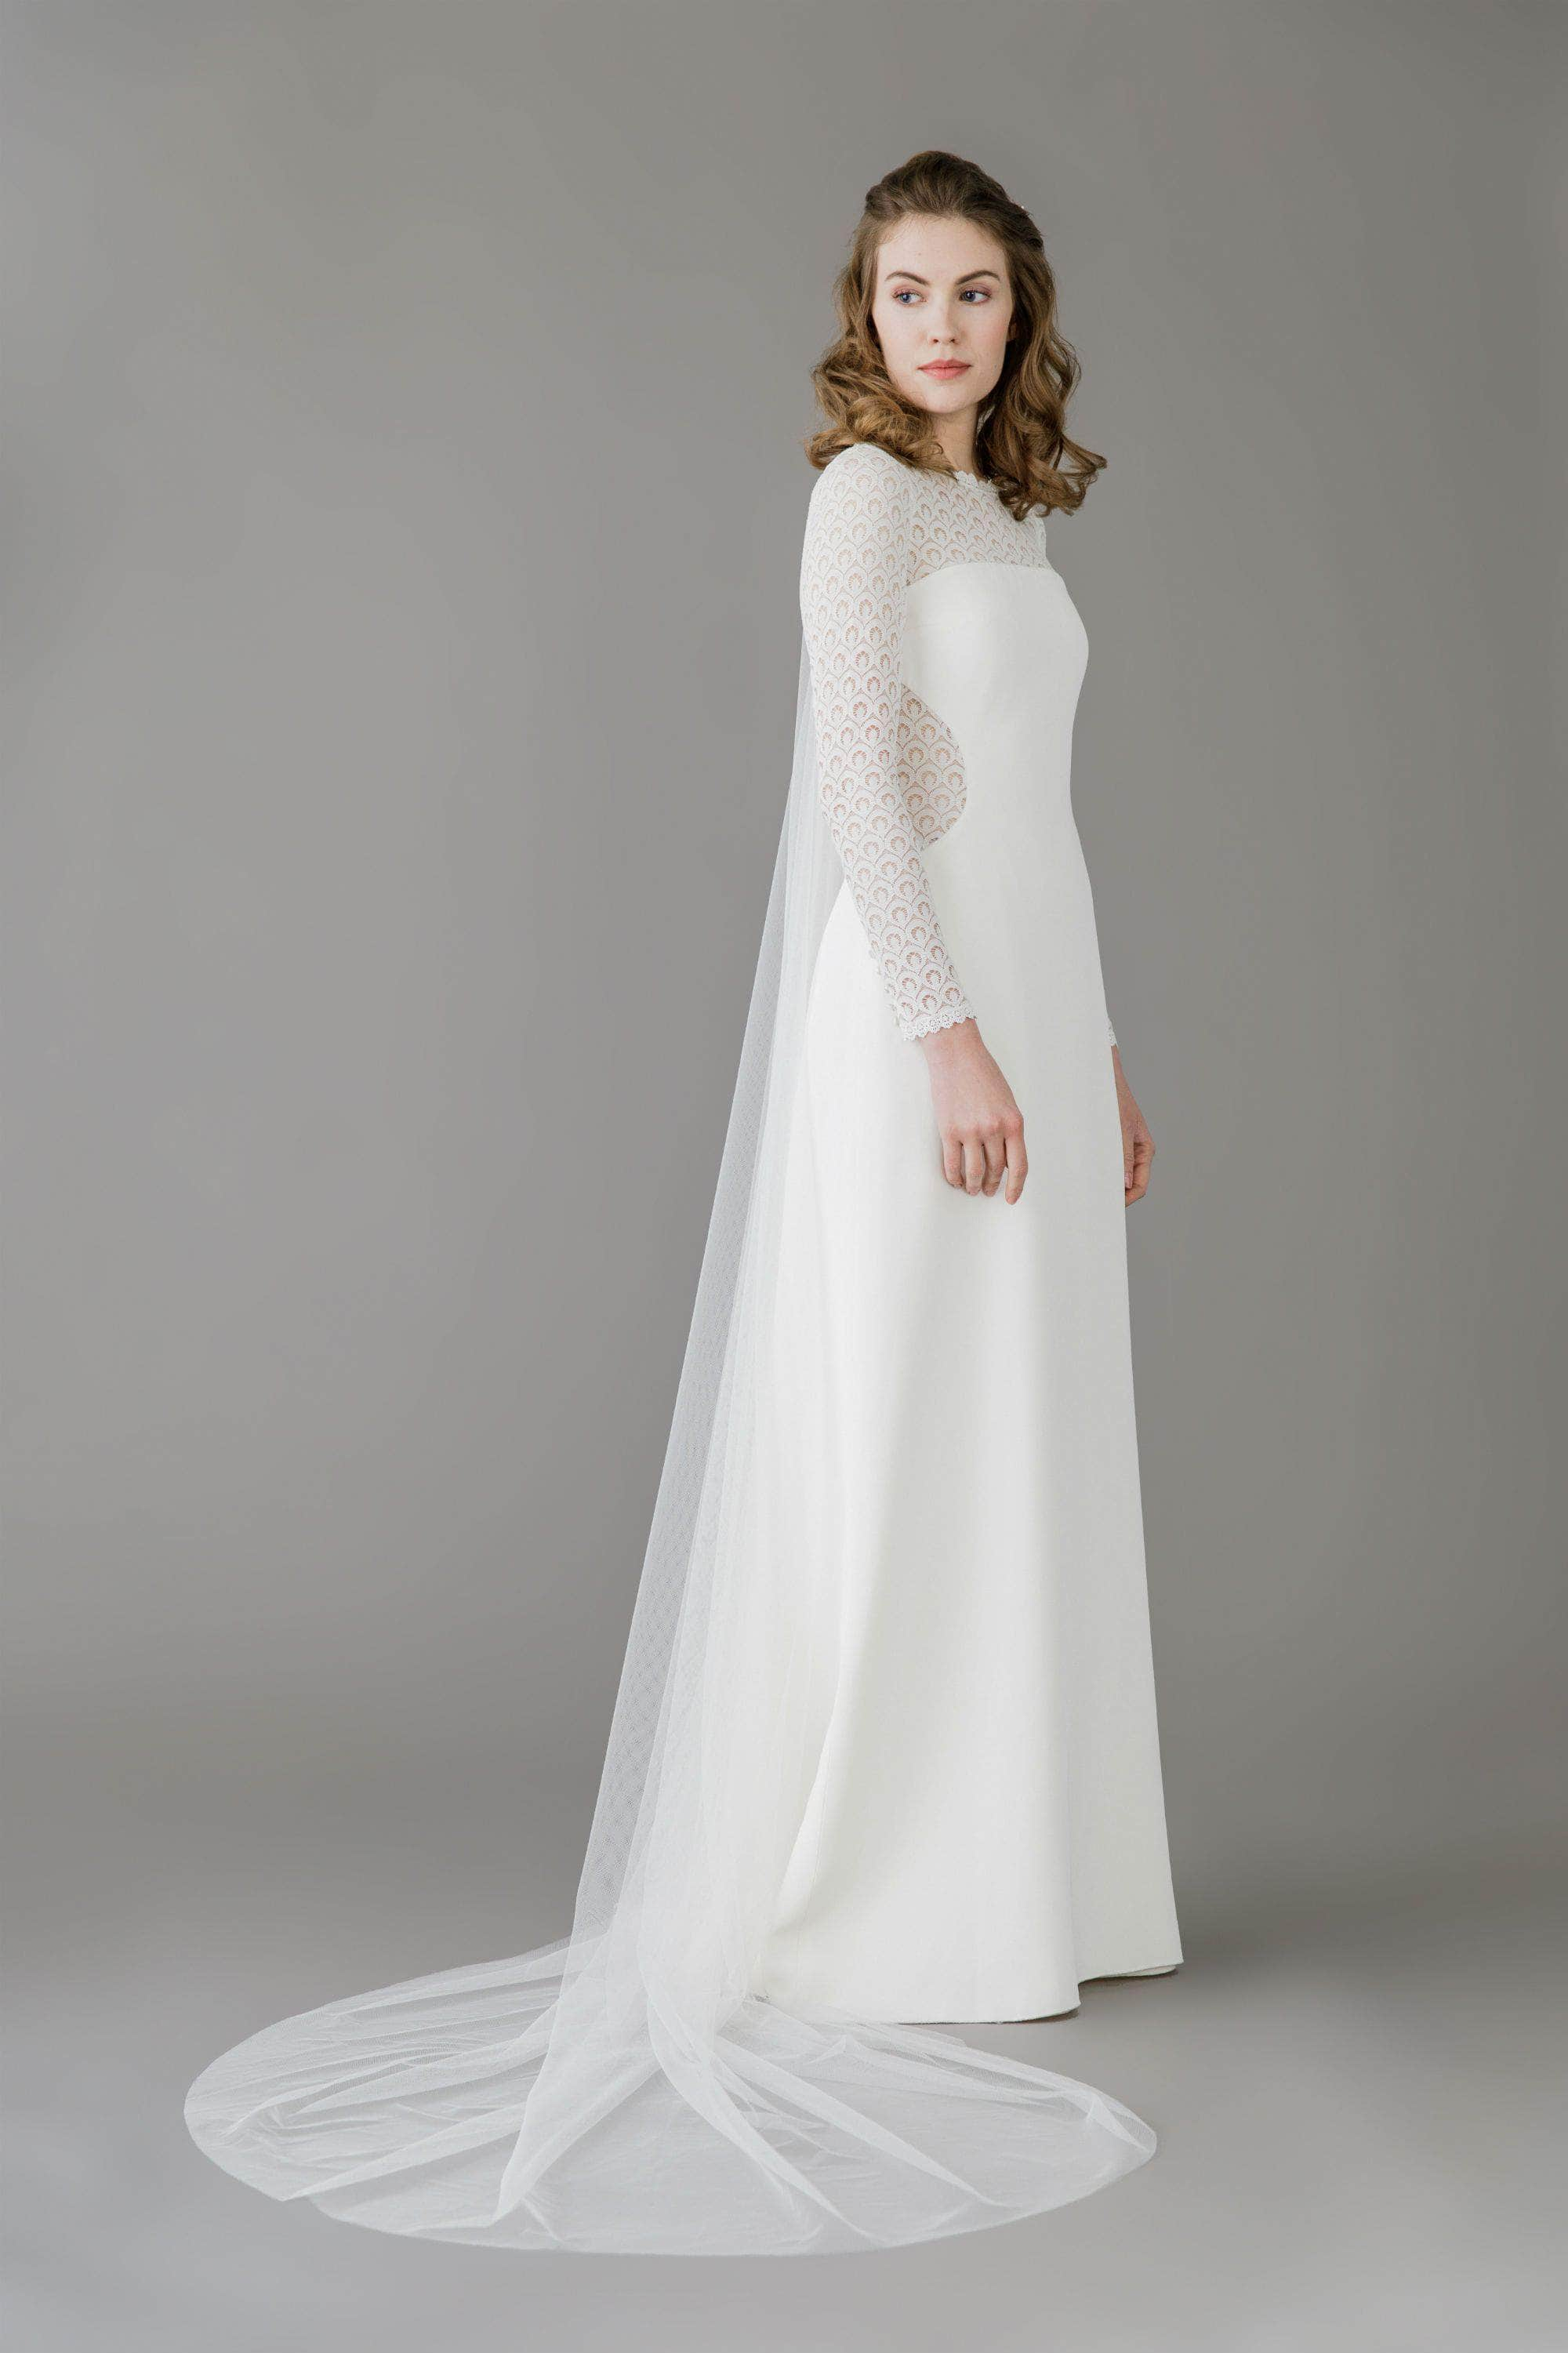 Wedding Veil Silk style barely there wedding veil - 'Ilona'